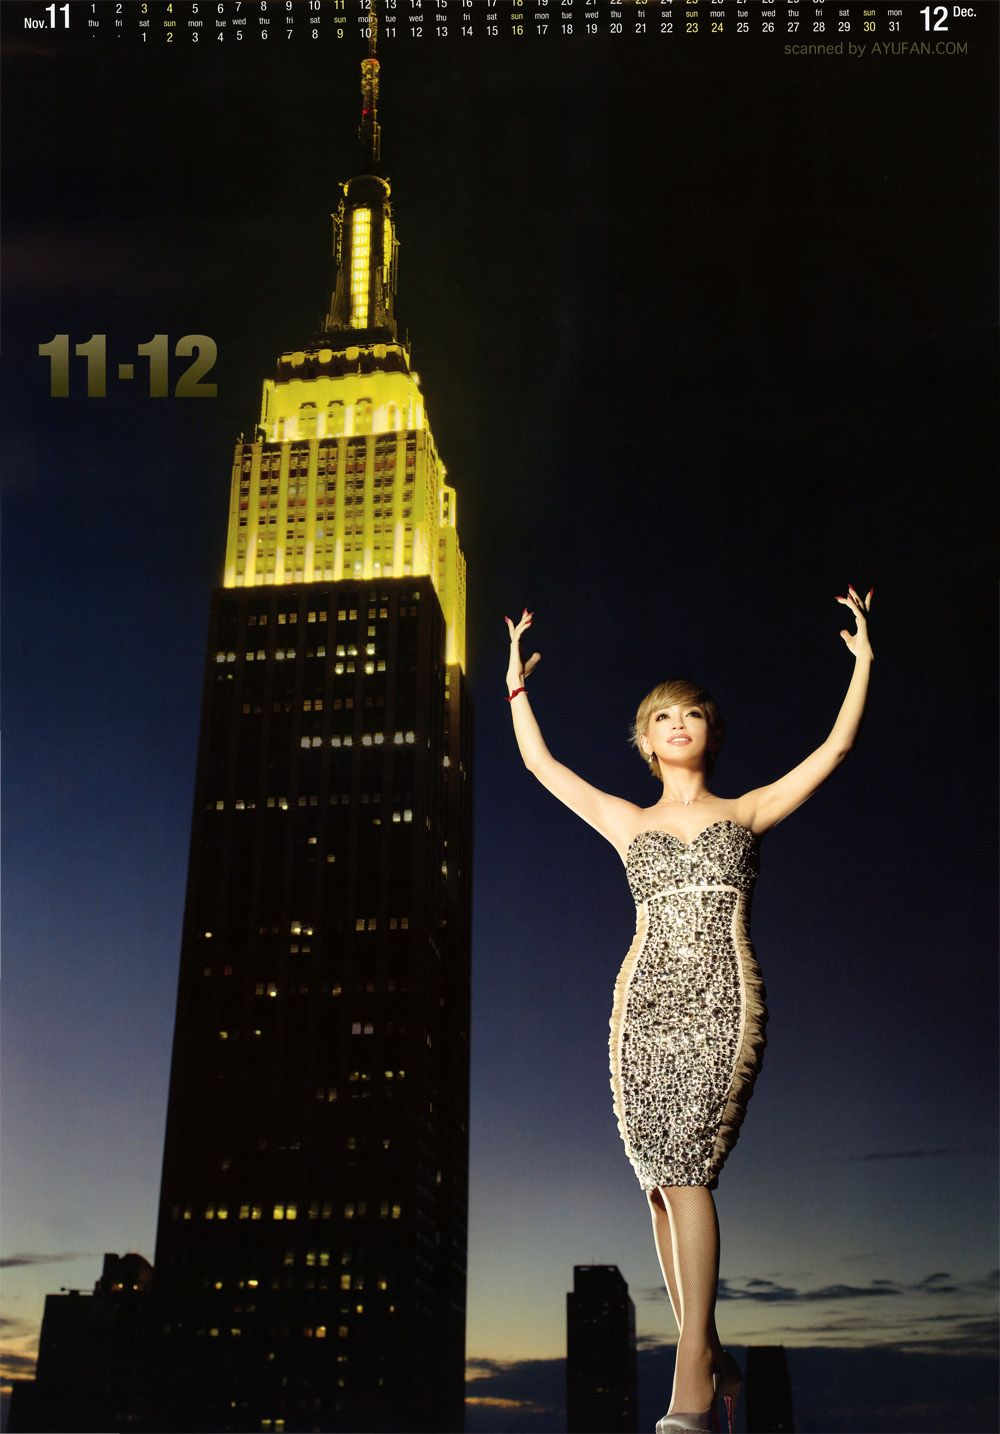 Ayumi Hamasaki's 2012 Calendar | 浜崎あゆみ, 浜崎 Pertaining To Calendar Empire State Building